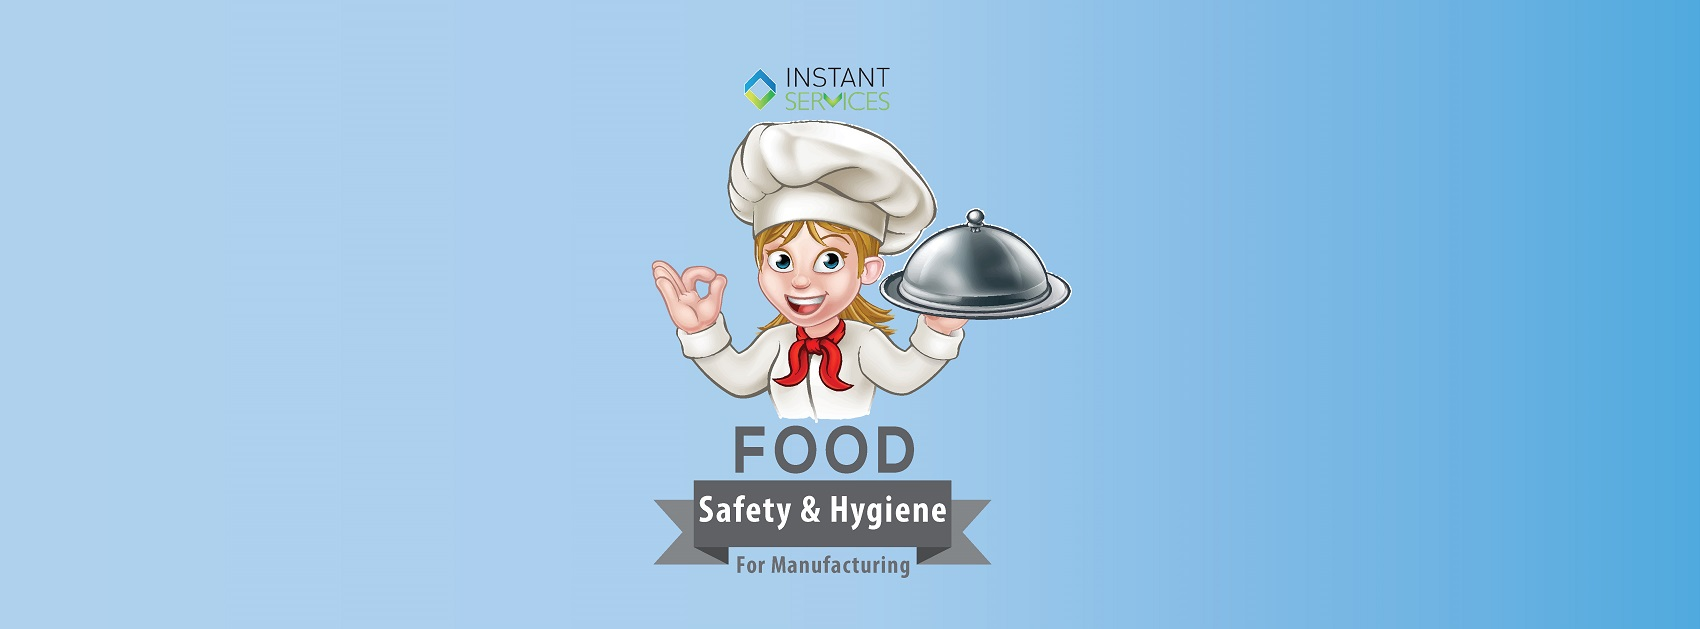 Food safety and hygiene program for maids and domestic workers